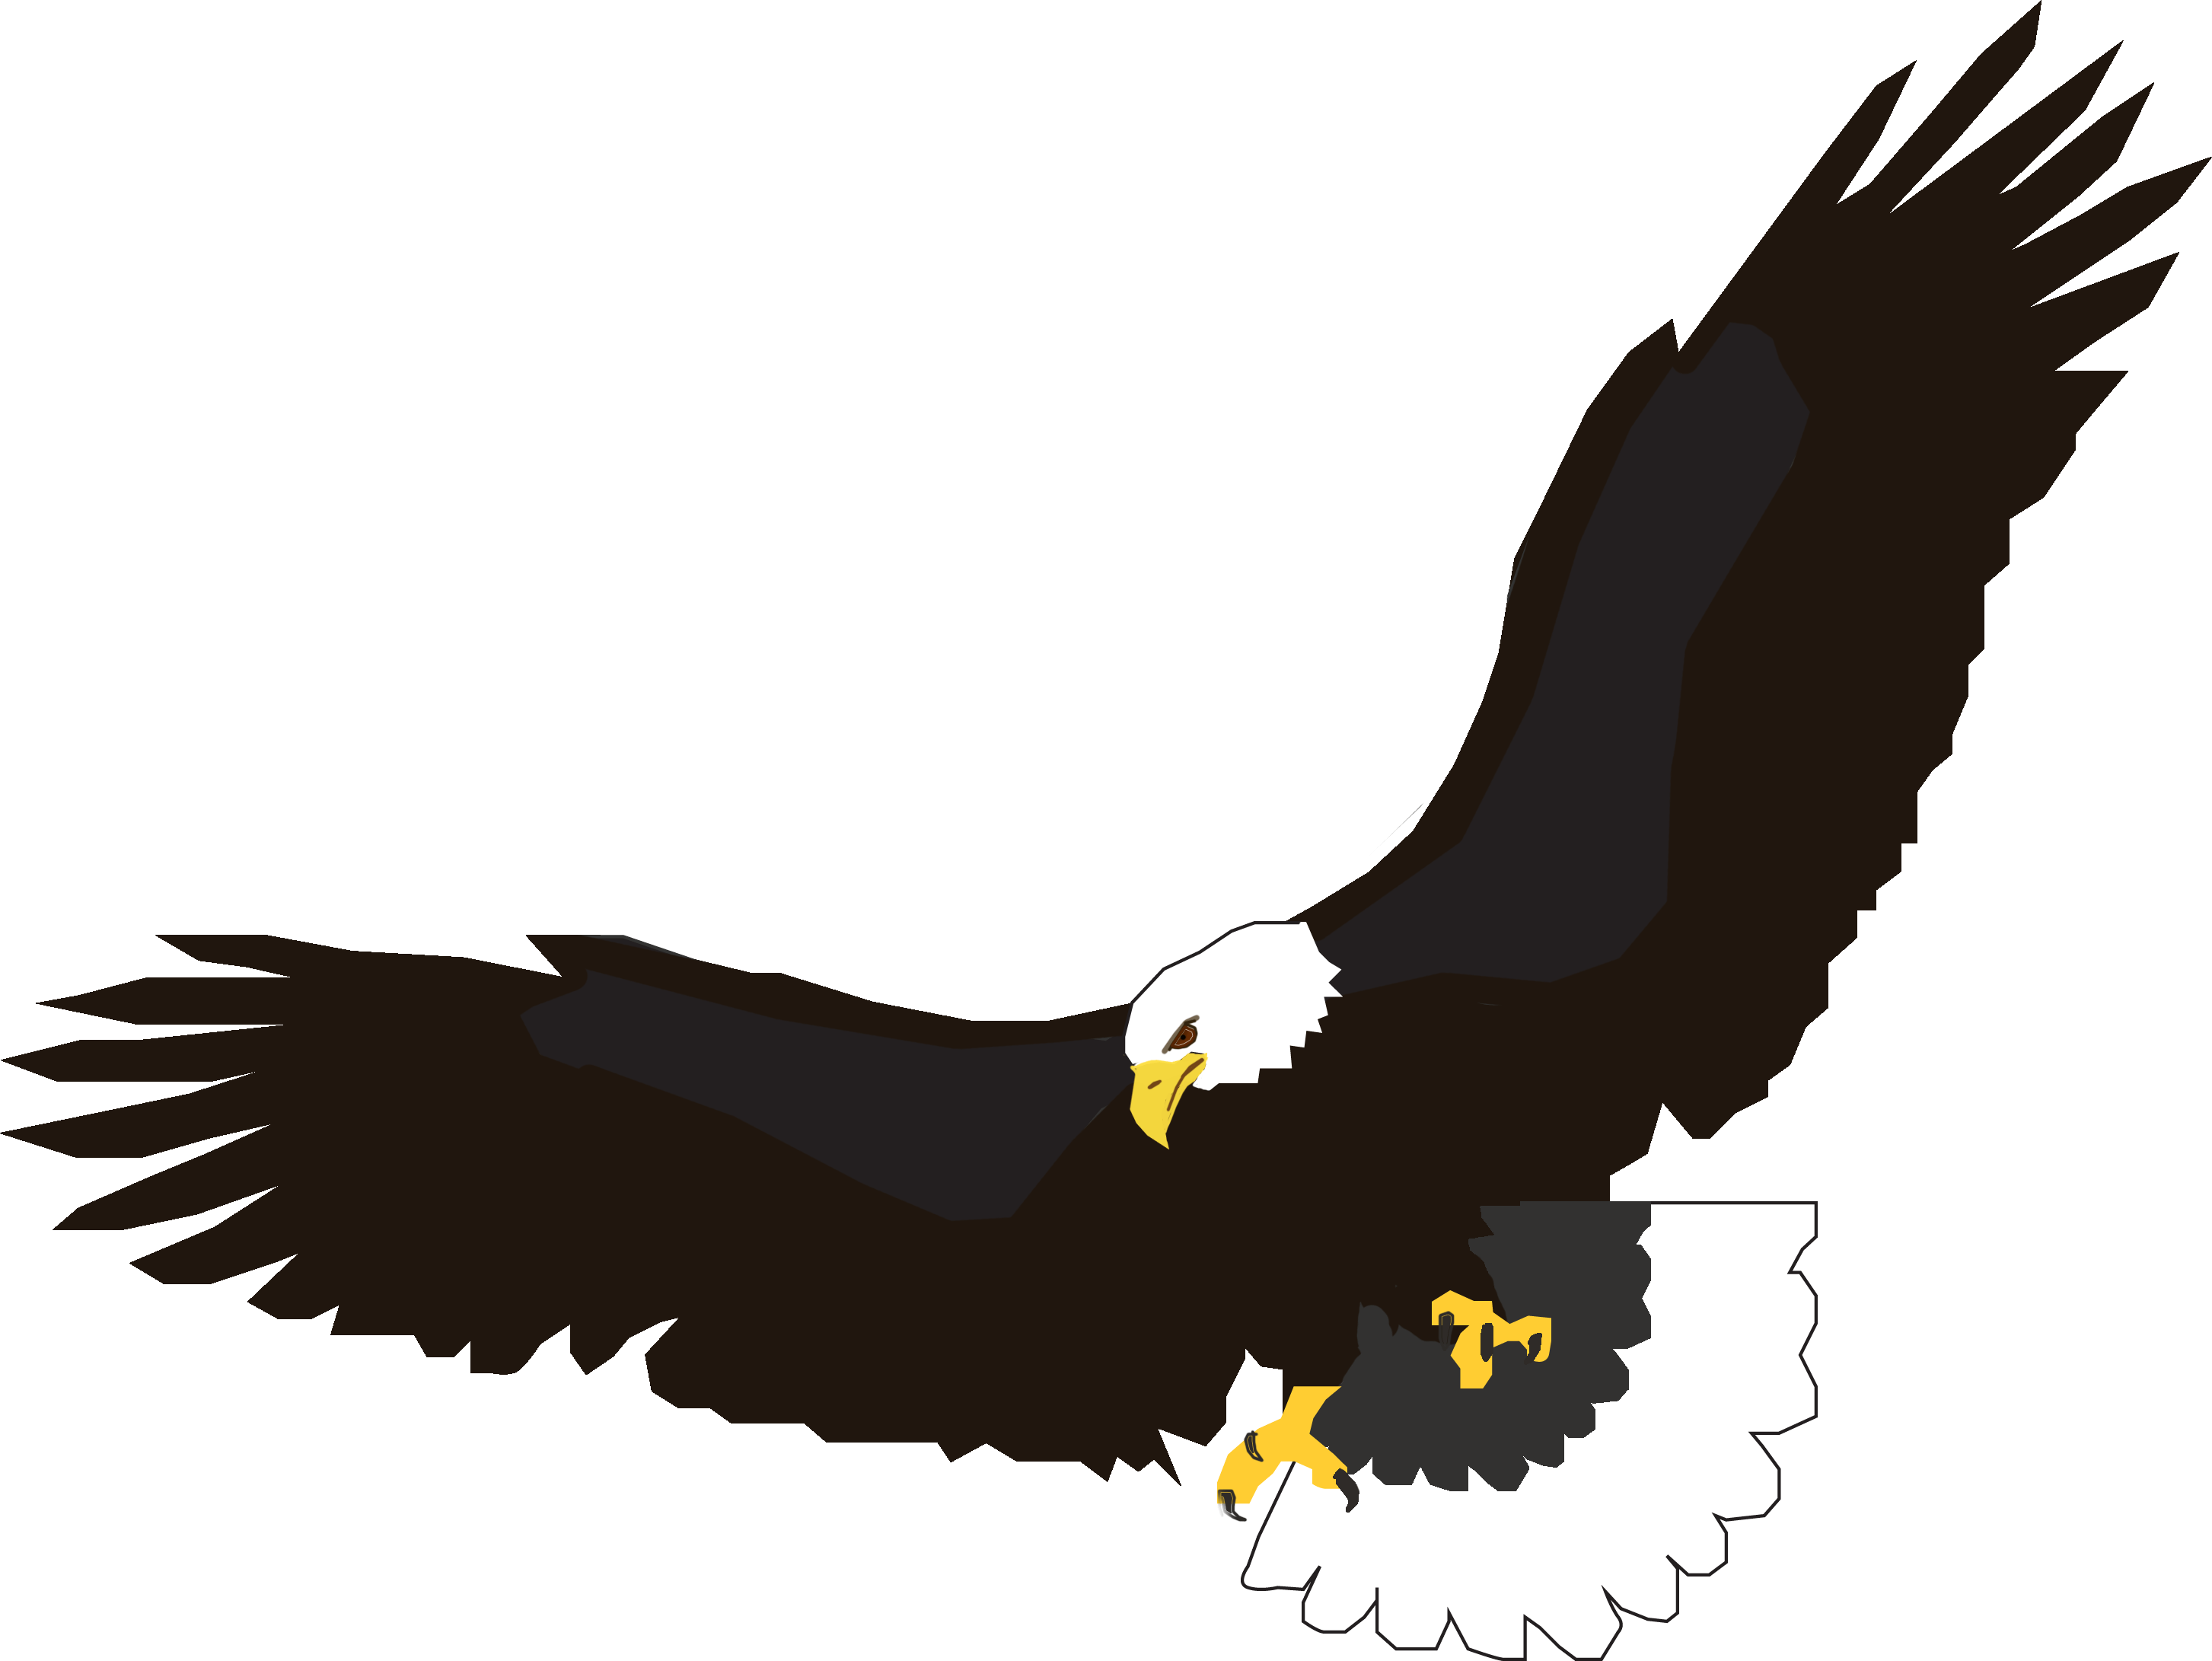 2906x2182 Download Eagle Free Png Photo Images And Clipart Freepngimg